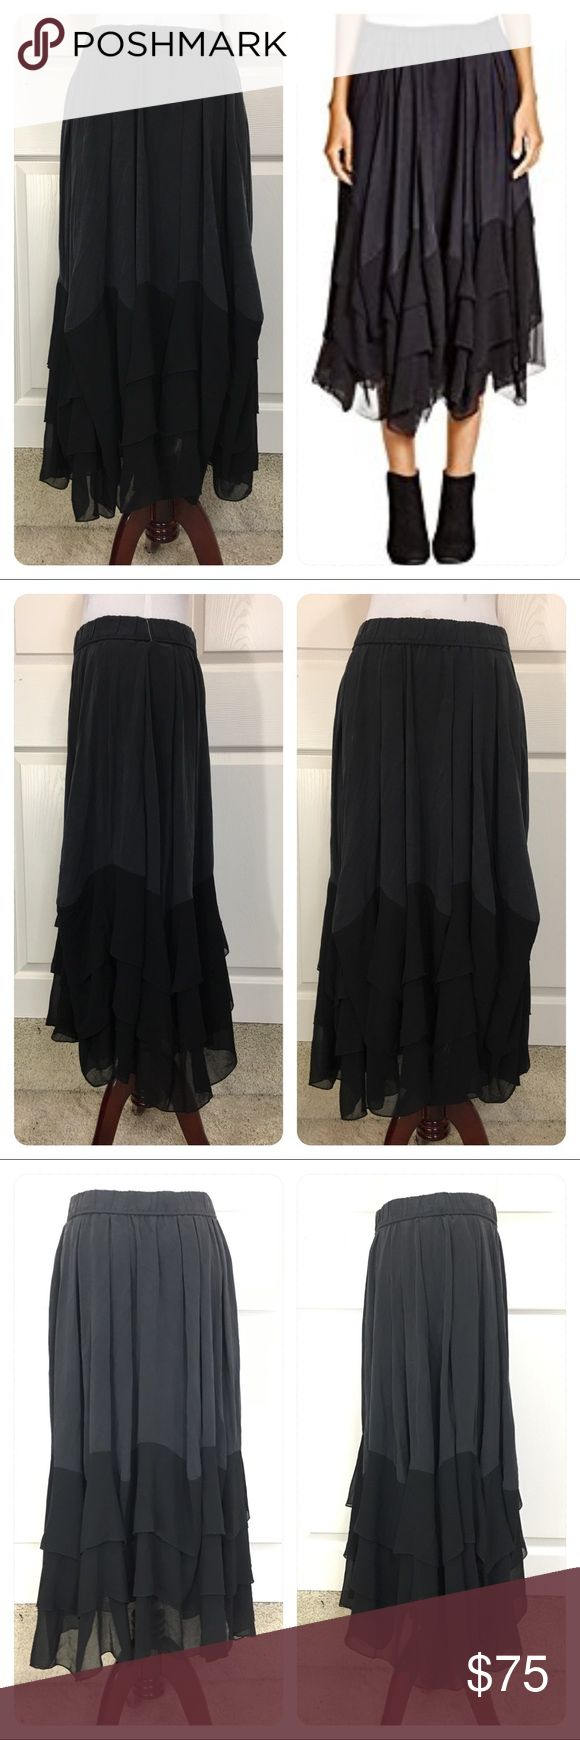 DKNY PURE  Silk Blend Pleated Tiered Skirt New with tags from a secondary market store. DKNY Pure Silk Blend Pleated Tiered Skirt. Elastic waist. Amazing addition to your wardrobe. No flaws noted. Dkny Skirts